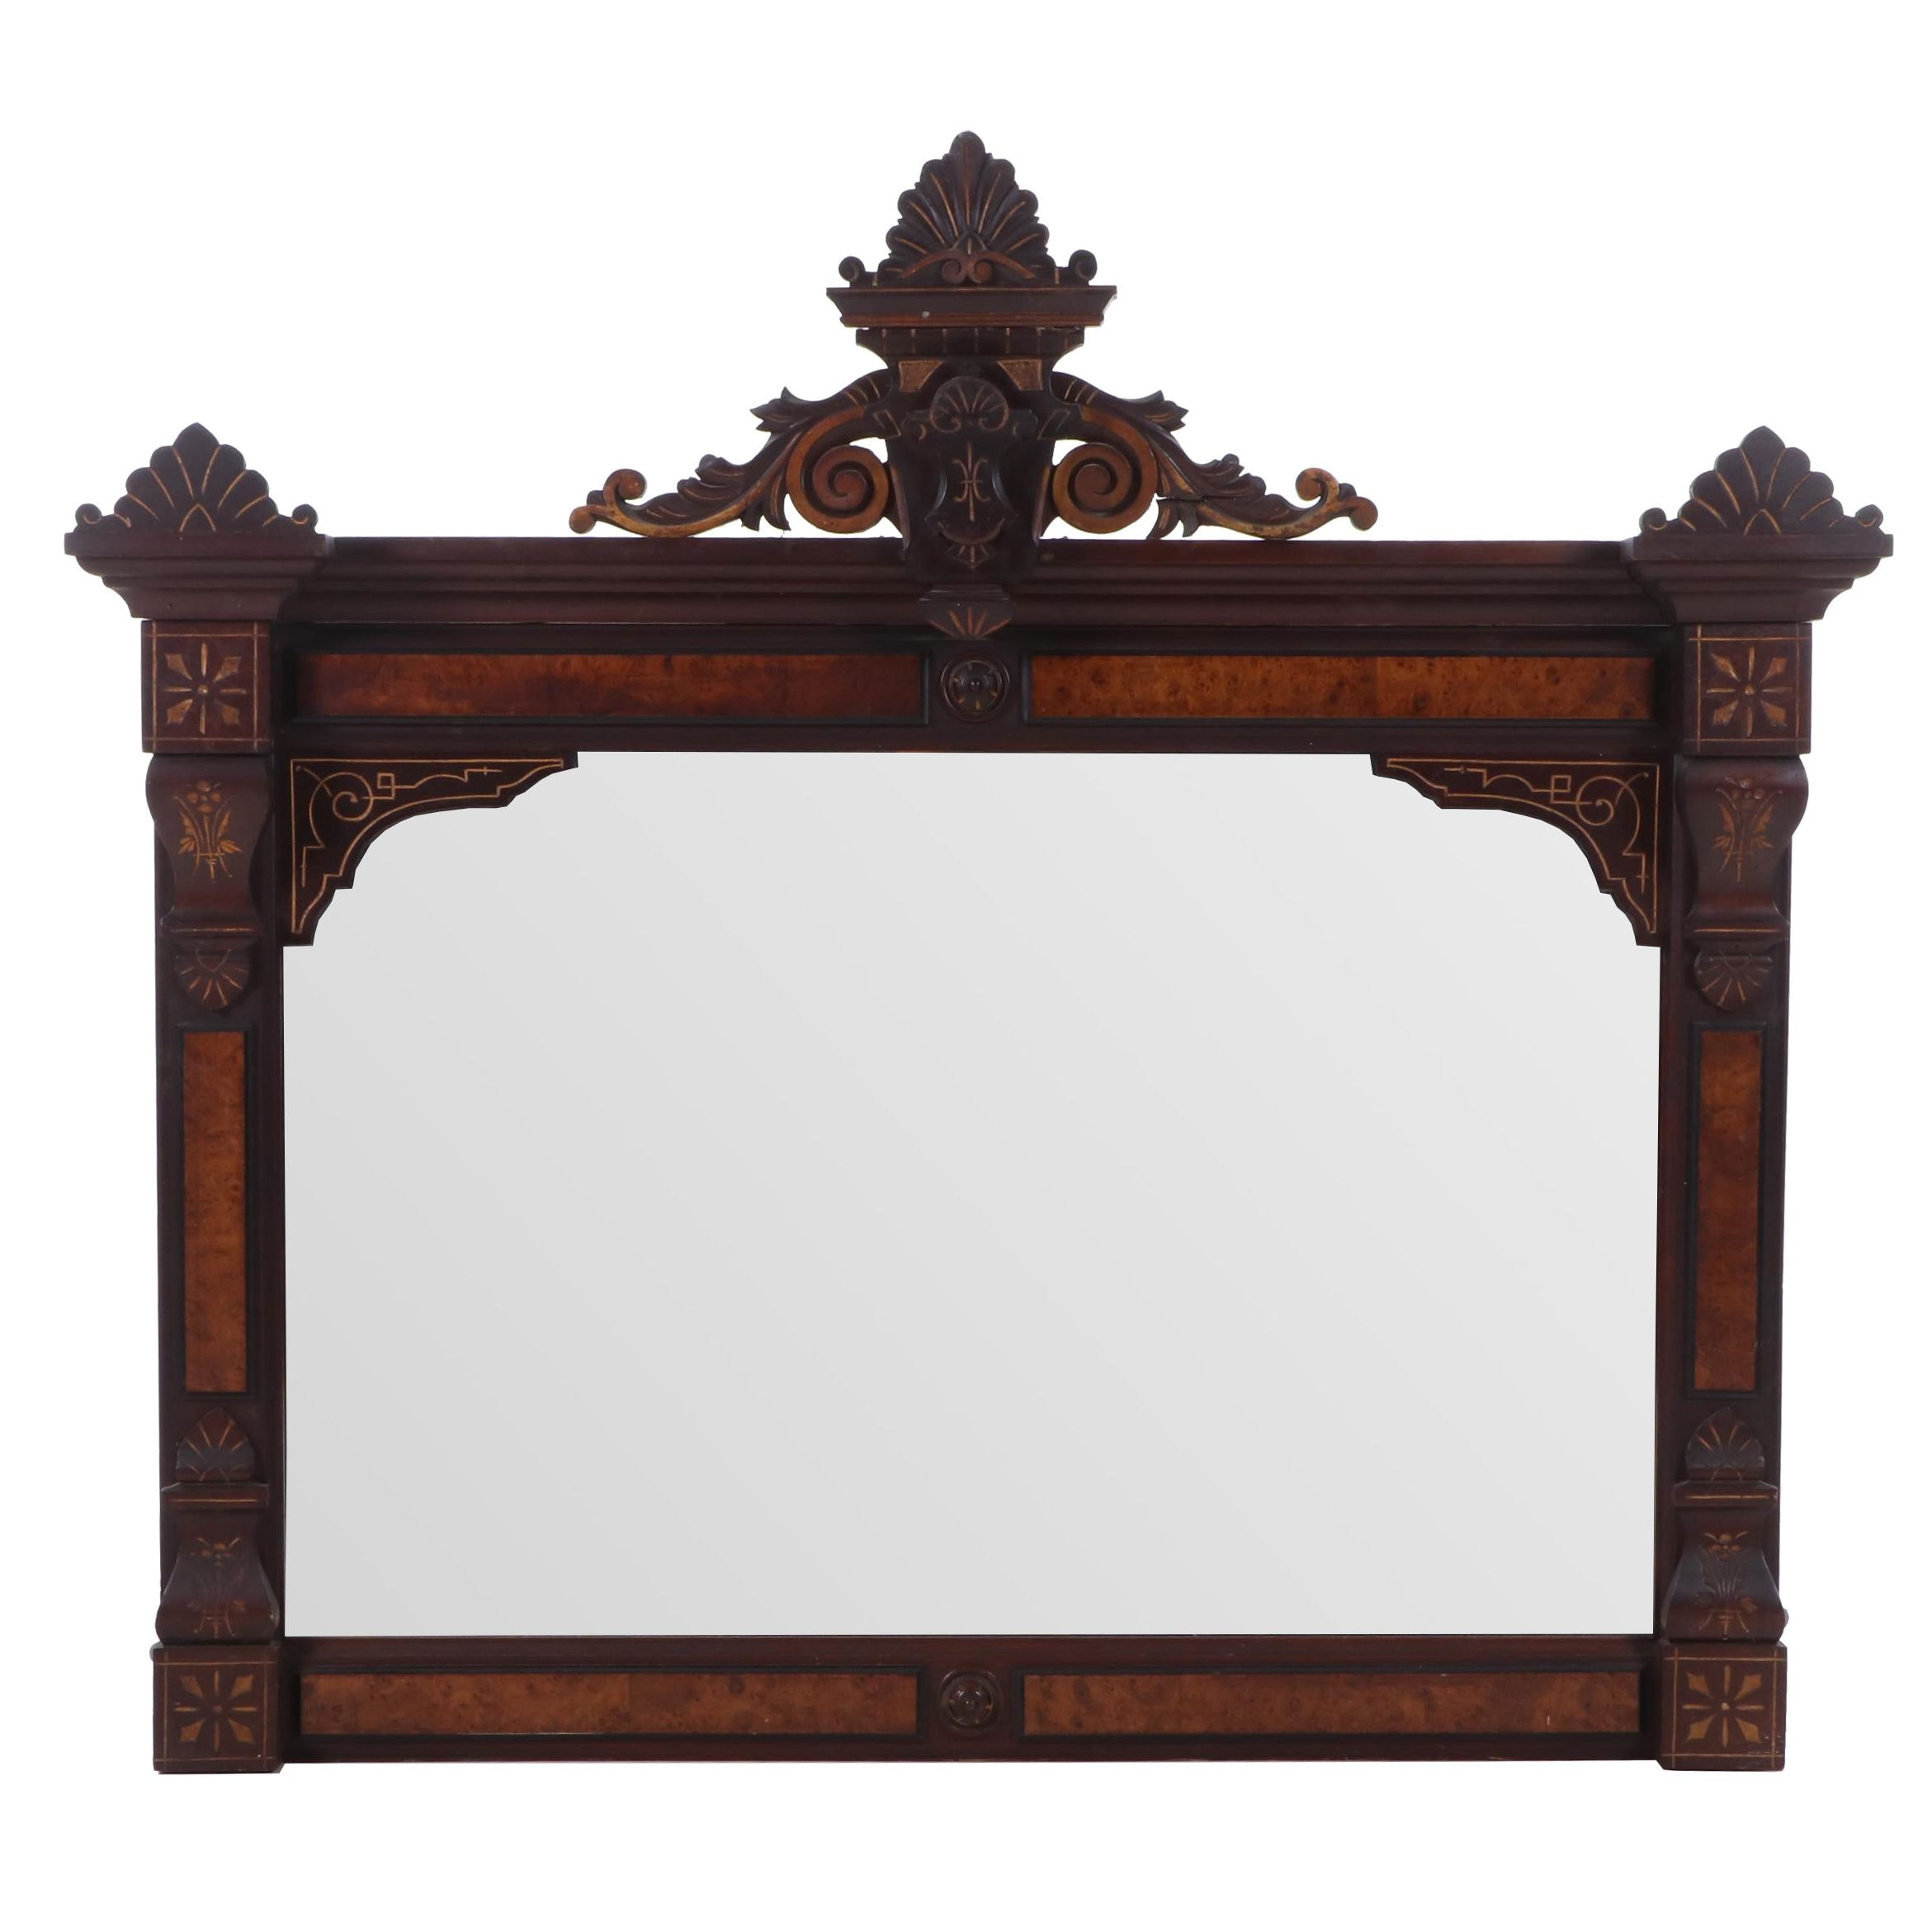 Victorian Eastlake Overmantel Mirror, Late 19th - Early 20th Century